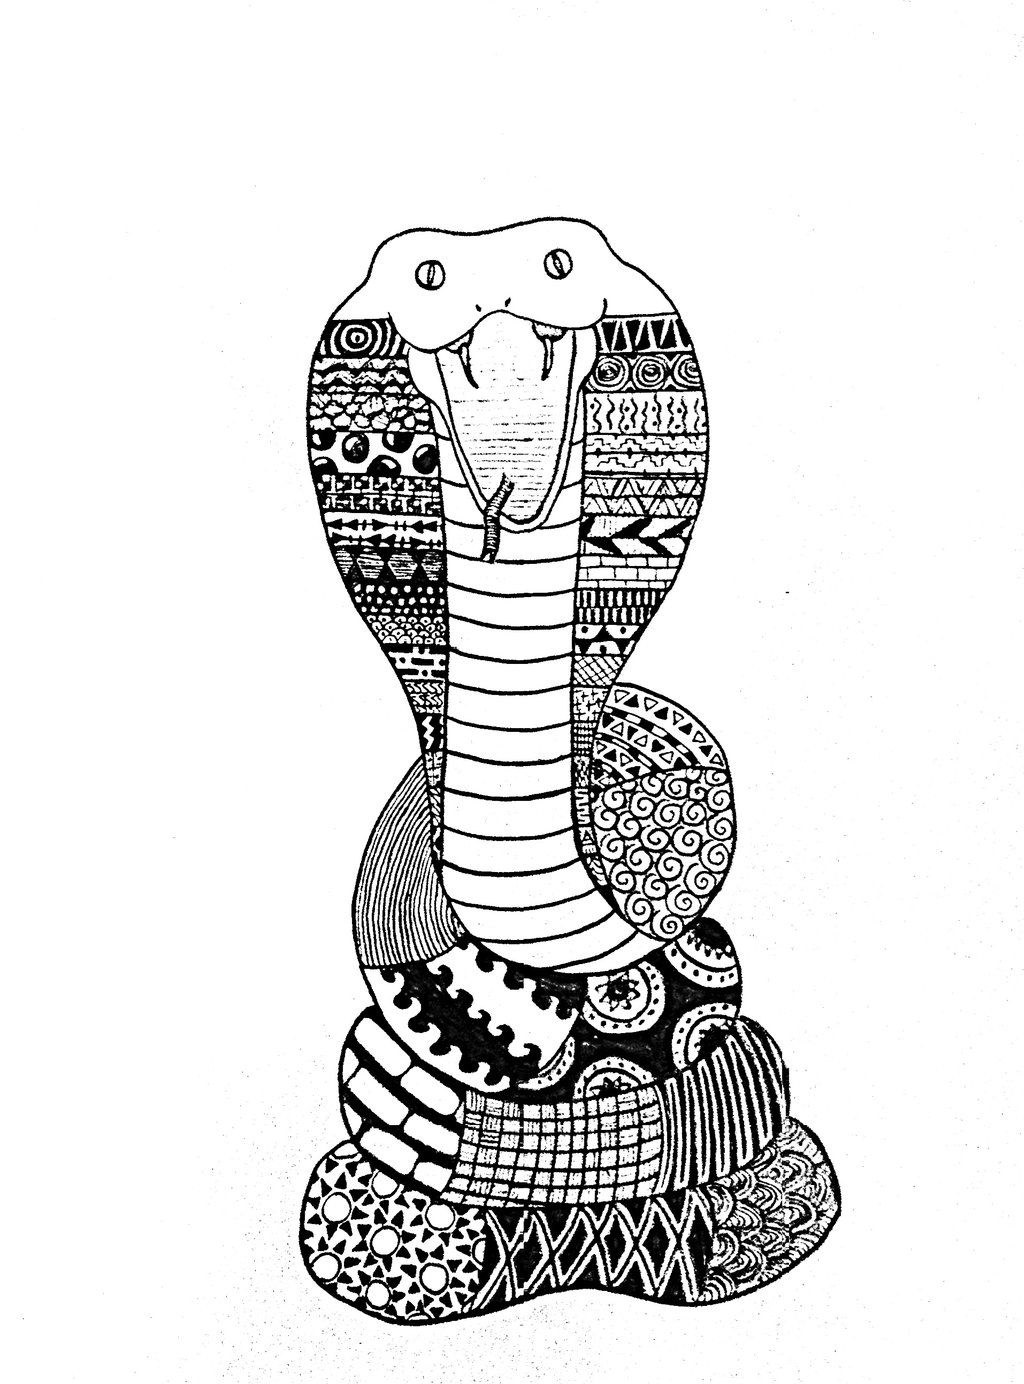 Free coloring pages king cobra - Deviantart Is The World S Largest Online Social Community For Artists And Art Enthusiasts Allowing People To Connect Through The Creation And Sharing Of